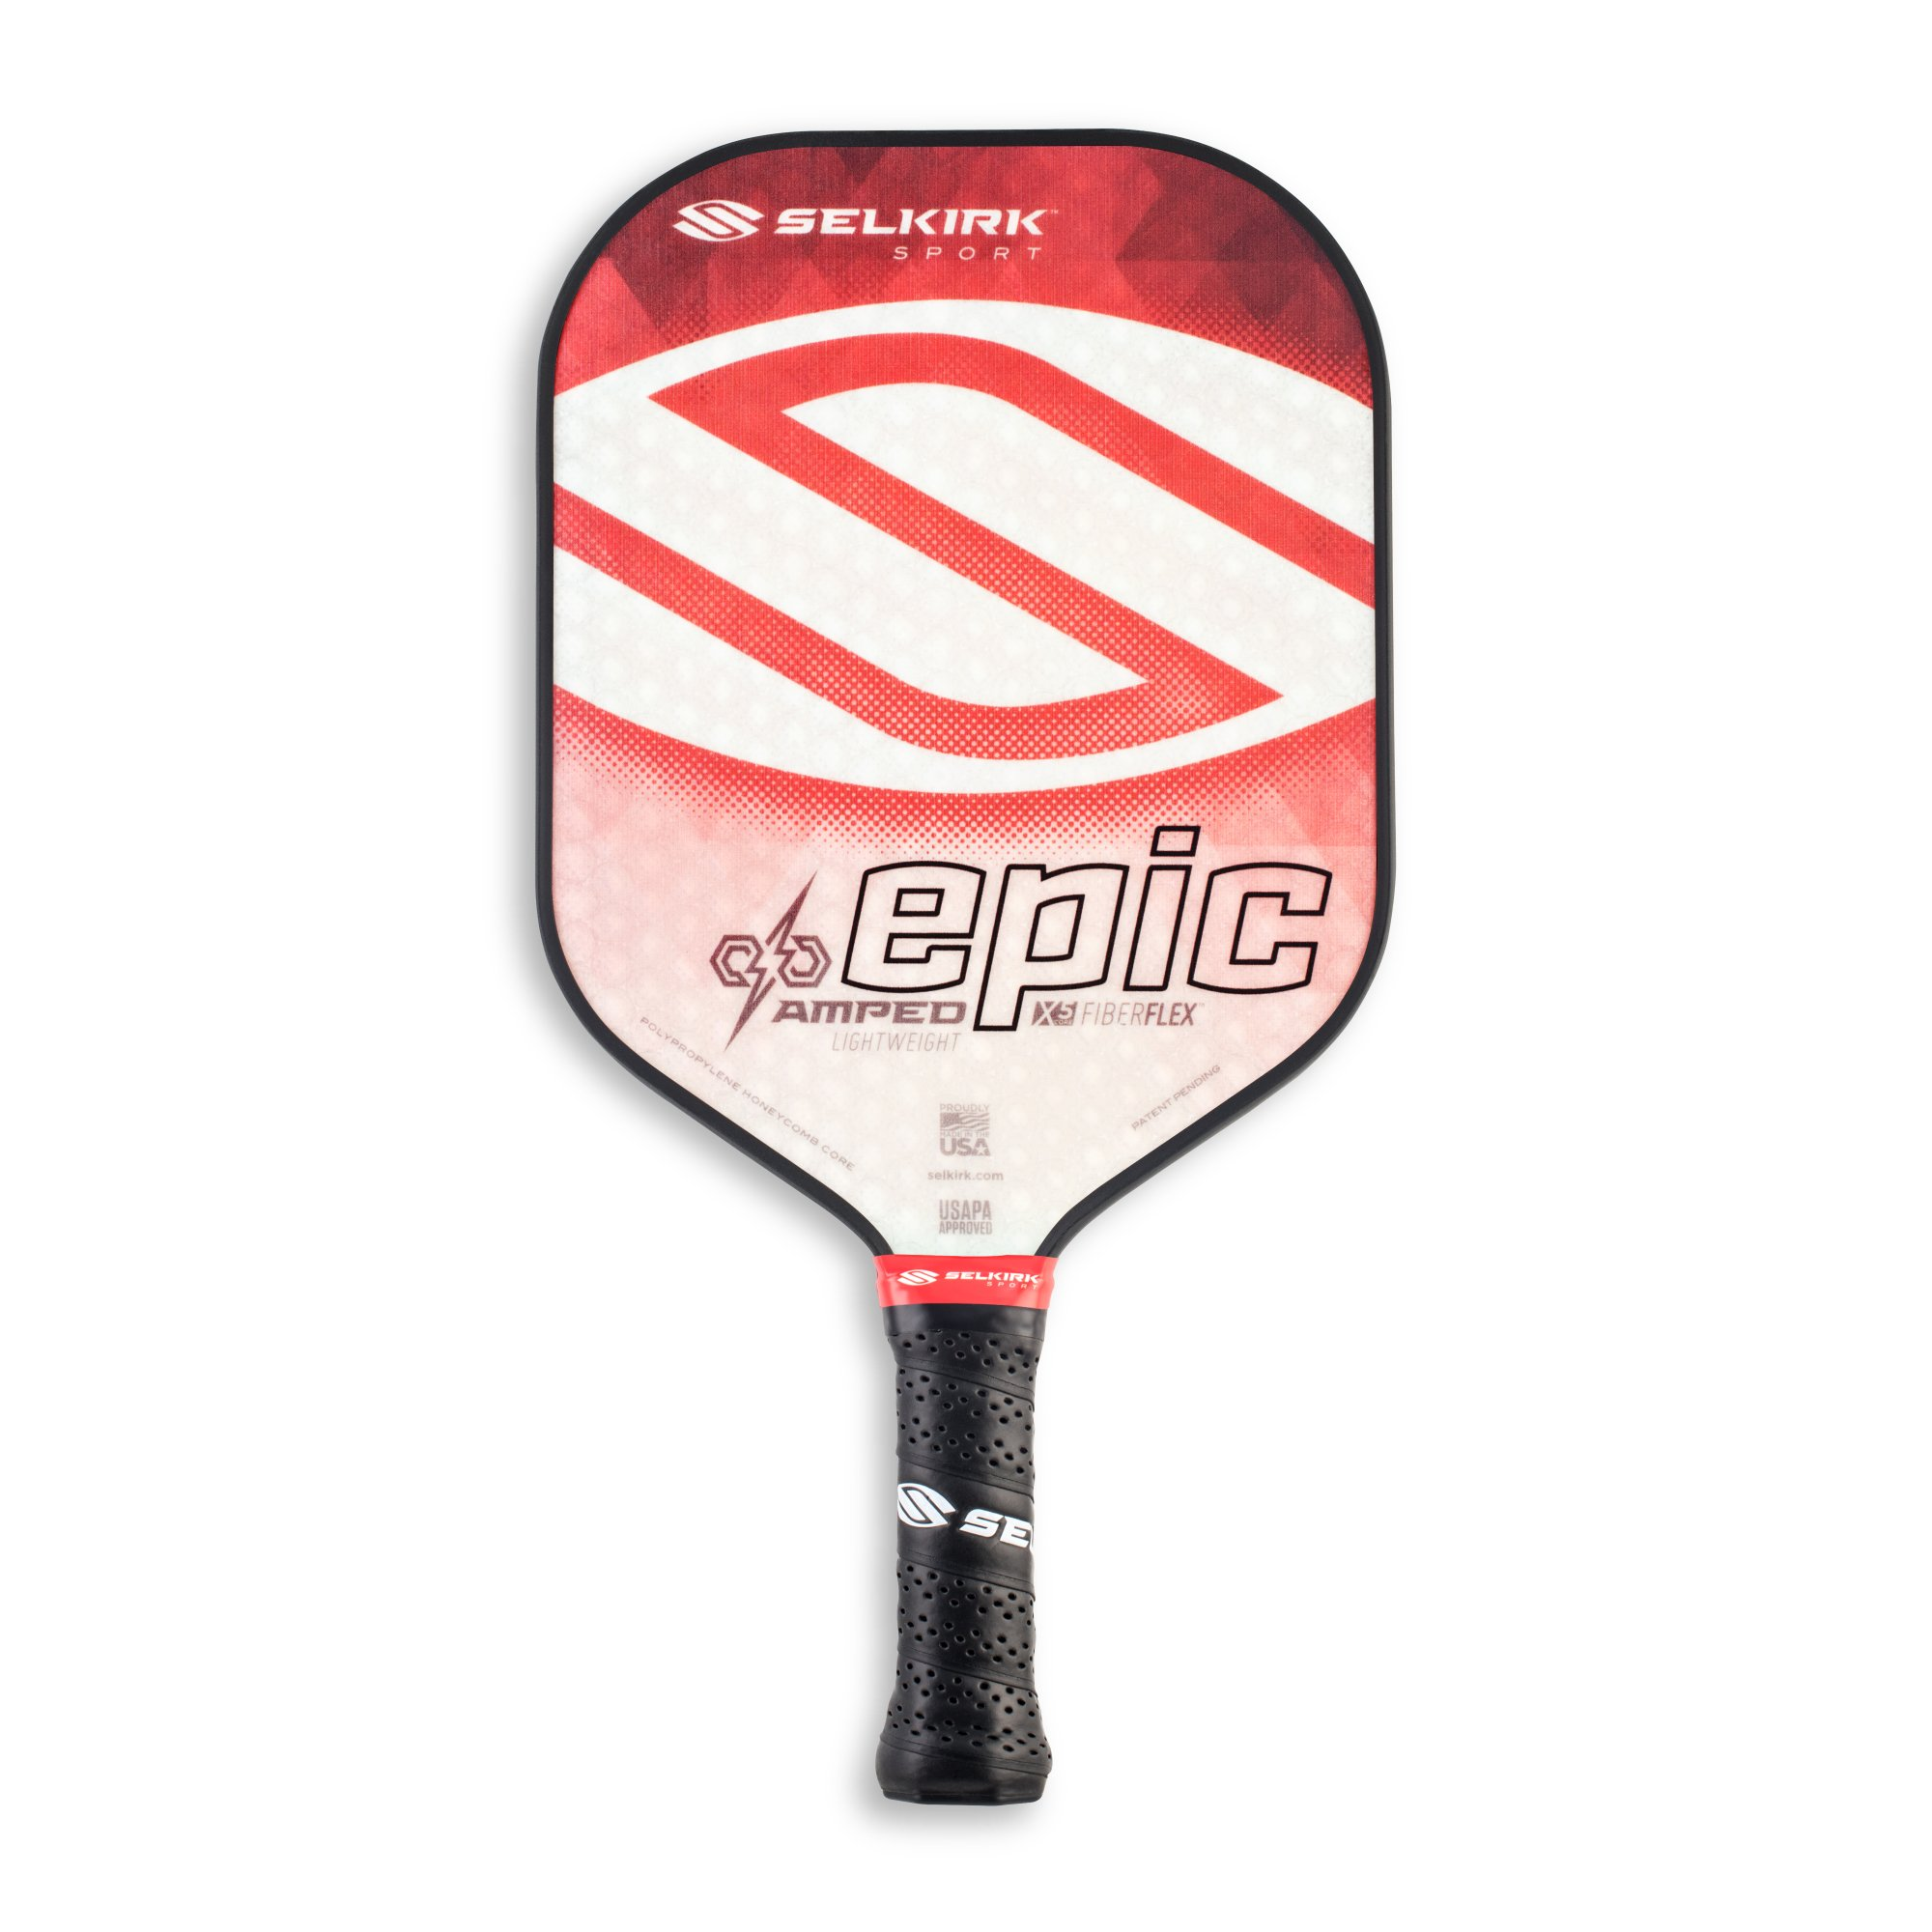 Selkirk Amped Pickleball Paddle - USAPA Approved - X5 Polypropylene Core - FiberFlex Fiberglass Face - 5 Sizes: Epic, S2, Omni, Maxima, and INVIKTA (Epic Lightweight - Ruby Red)